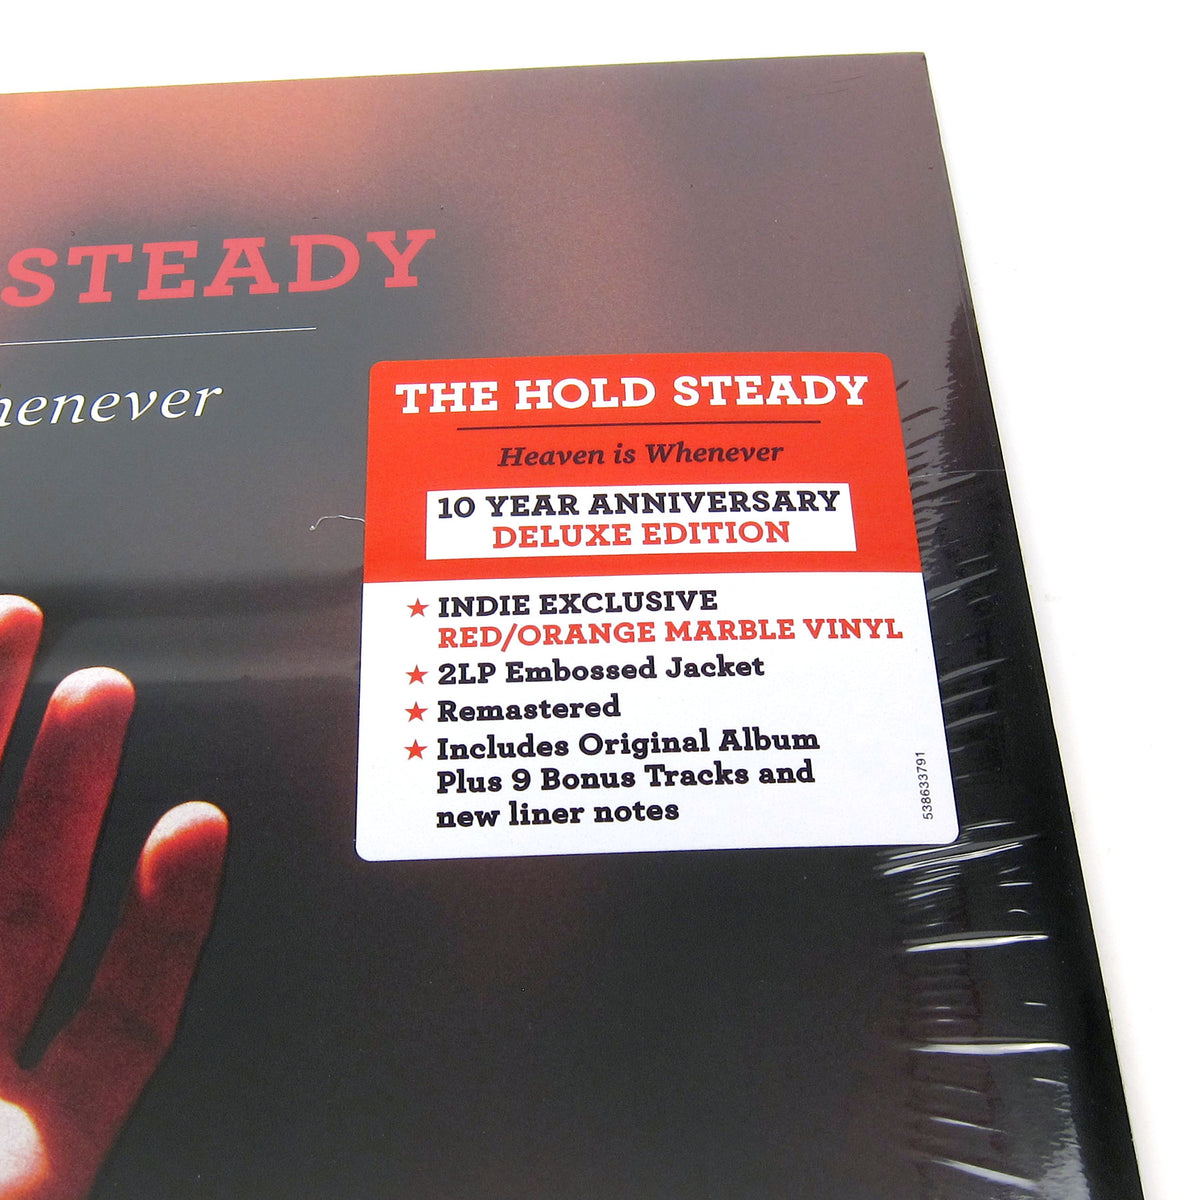 Hold Steady: Heaven is Whenever - Deluxe Edition (Indie Exclusive Colored Vinyl) Vinyl 2LP